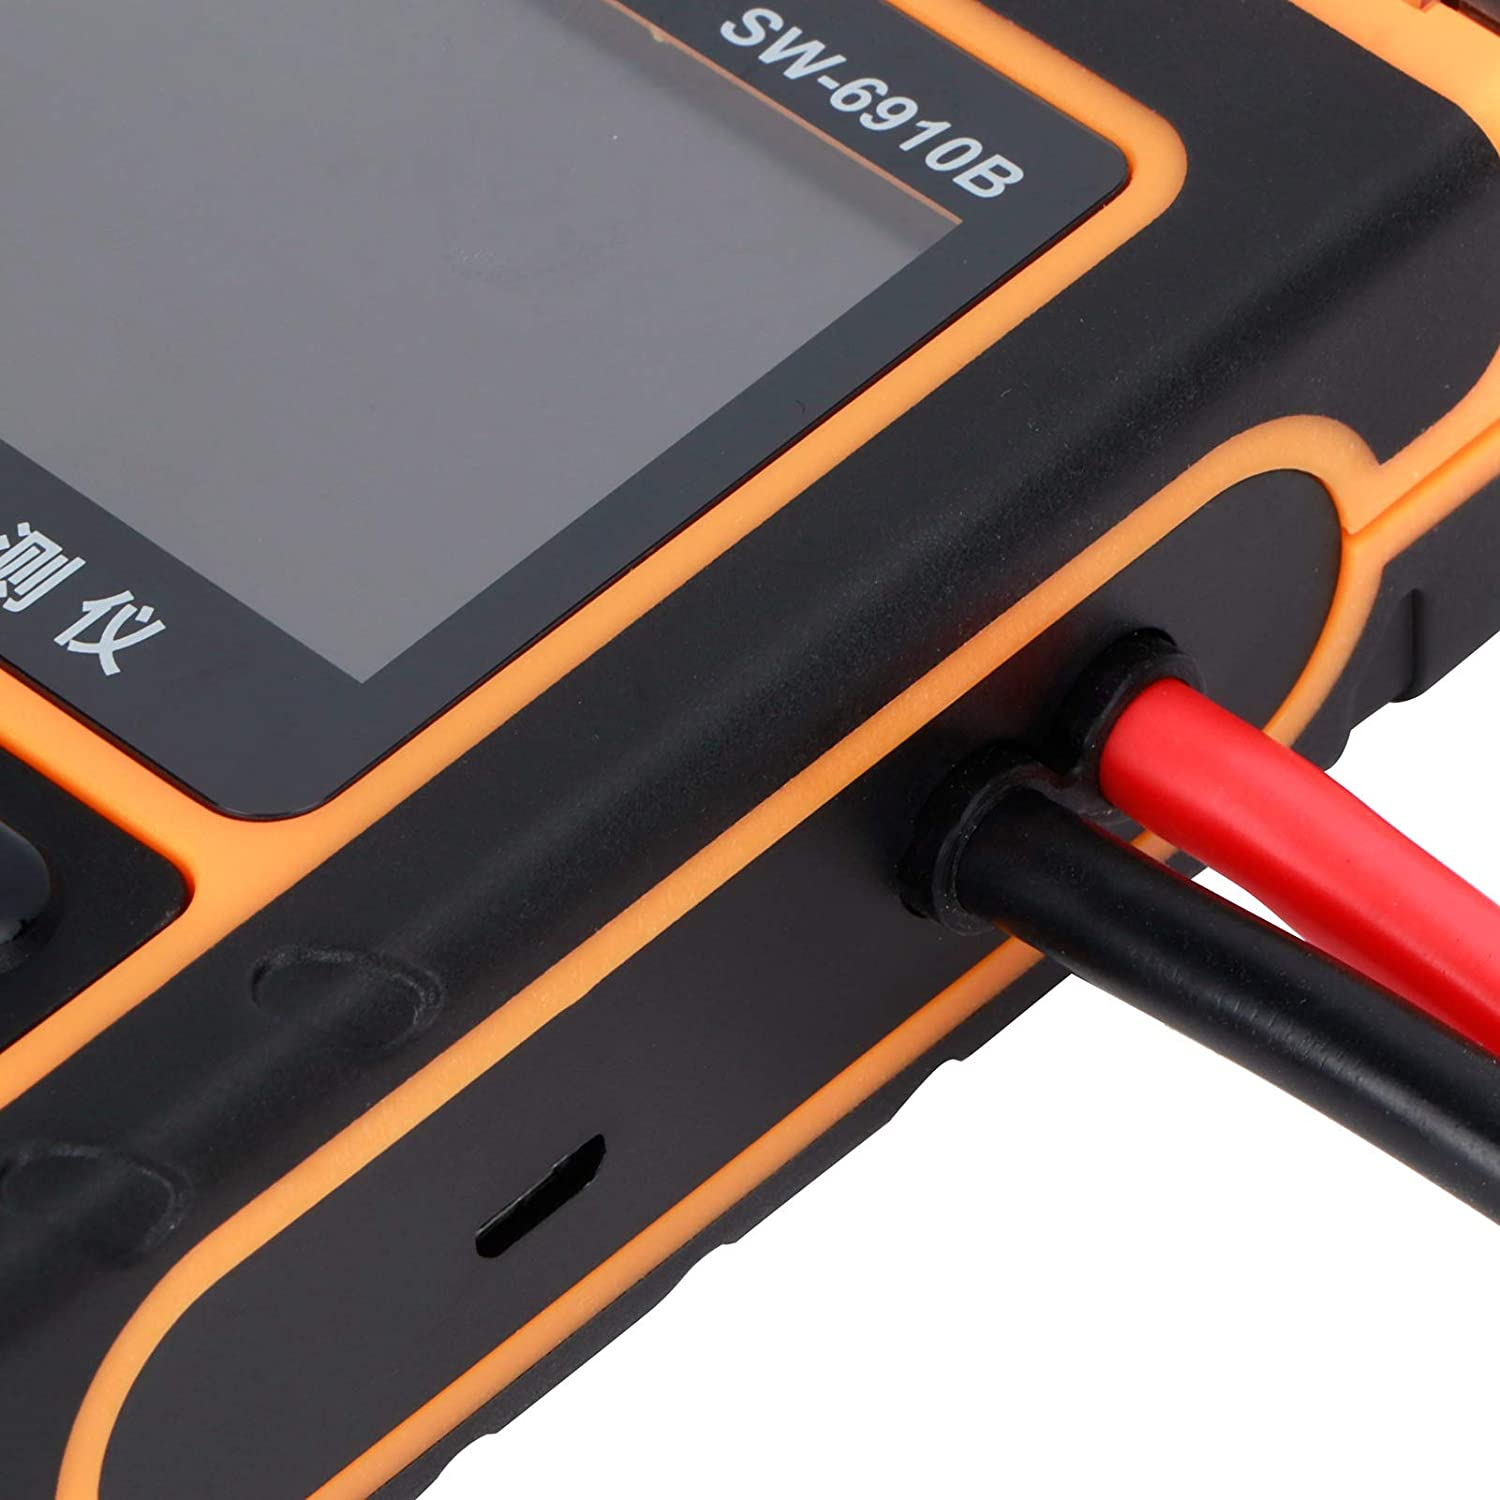 SALUTUY Car Quantity limited Battery Tester Low Frequency Built Max 72% OFF Constant Current